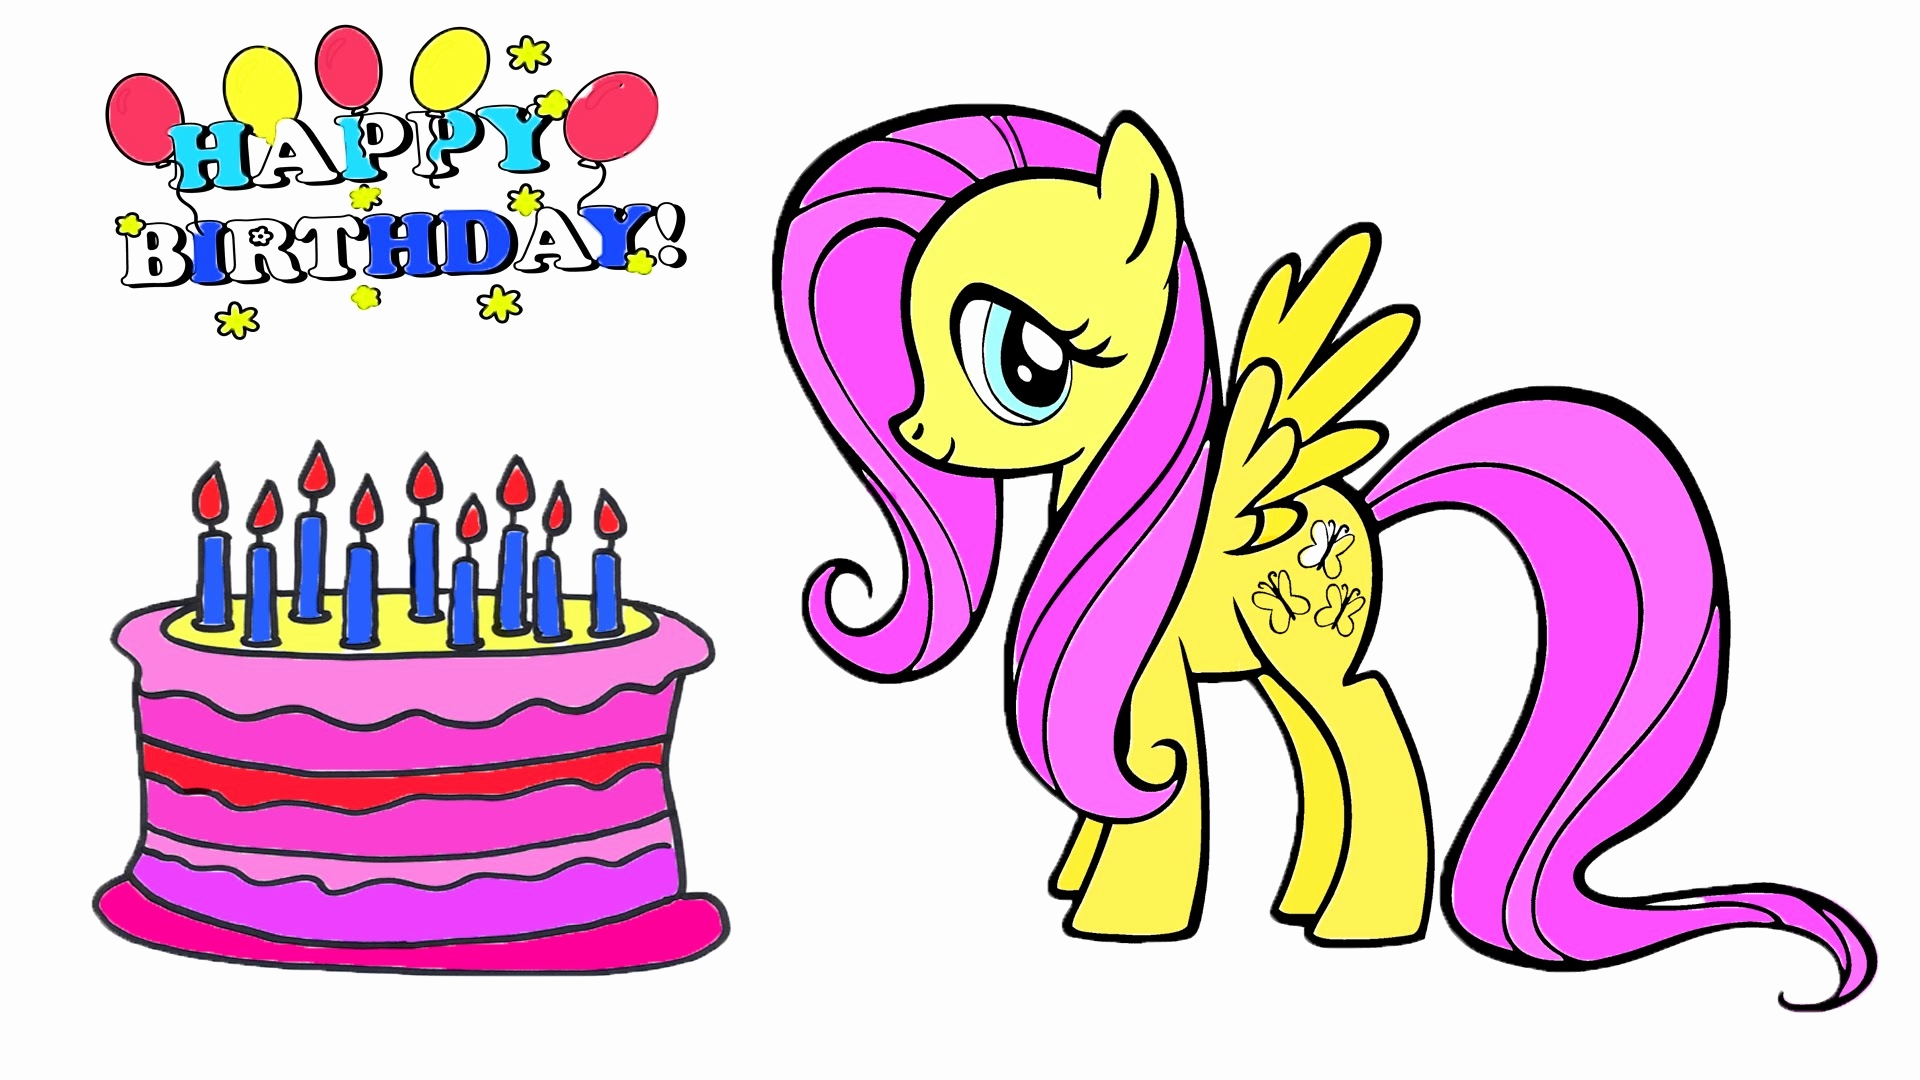 my little pony birthday clipart ; my-little-pony-birthday-cards-free-new-cake-clipart-my-little-pony-pencil-and-in-color-cake-clipart-my-of-my-little-pony-birthday-cards-free